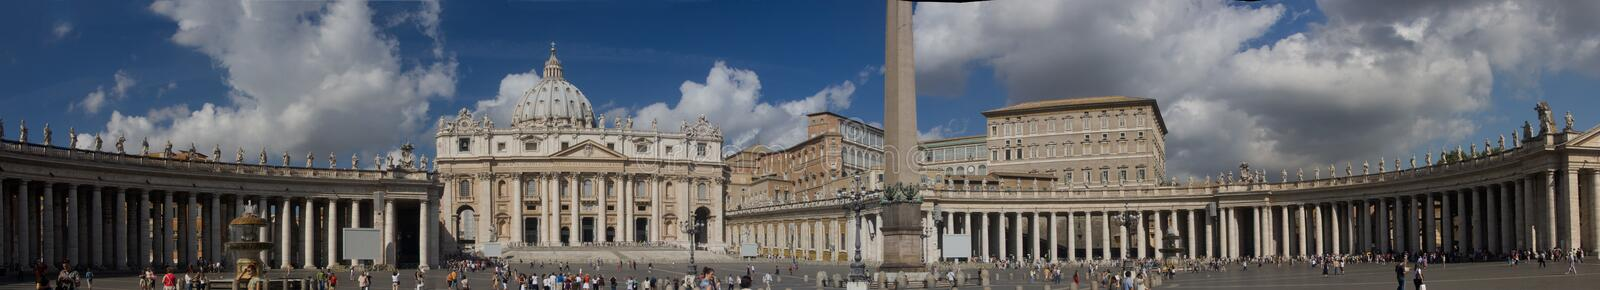 Download Panoramic View Of St. Peter's Basilica Square Editorial Stock Photo - Image: 23538718